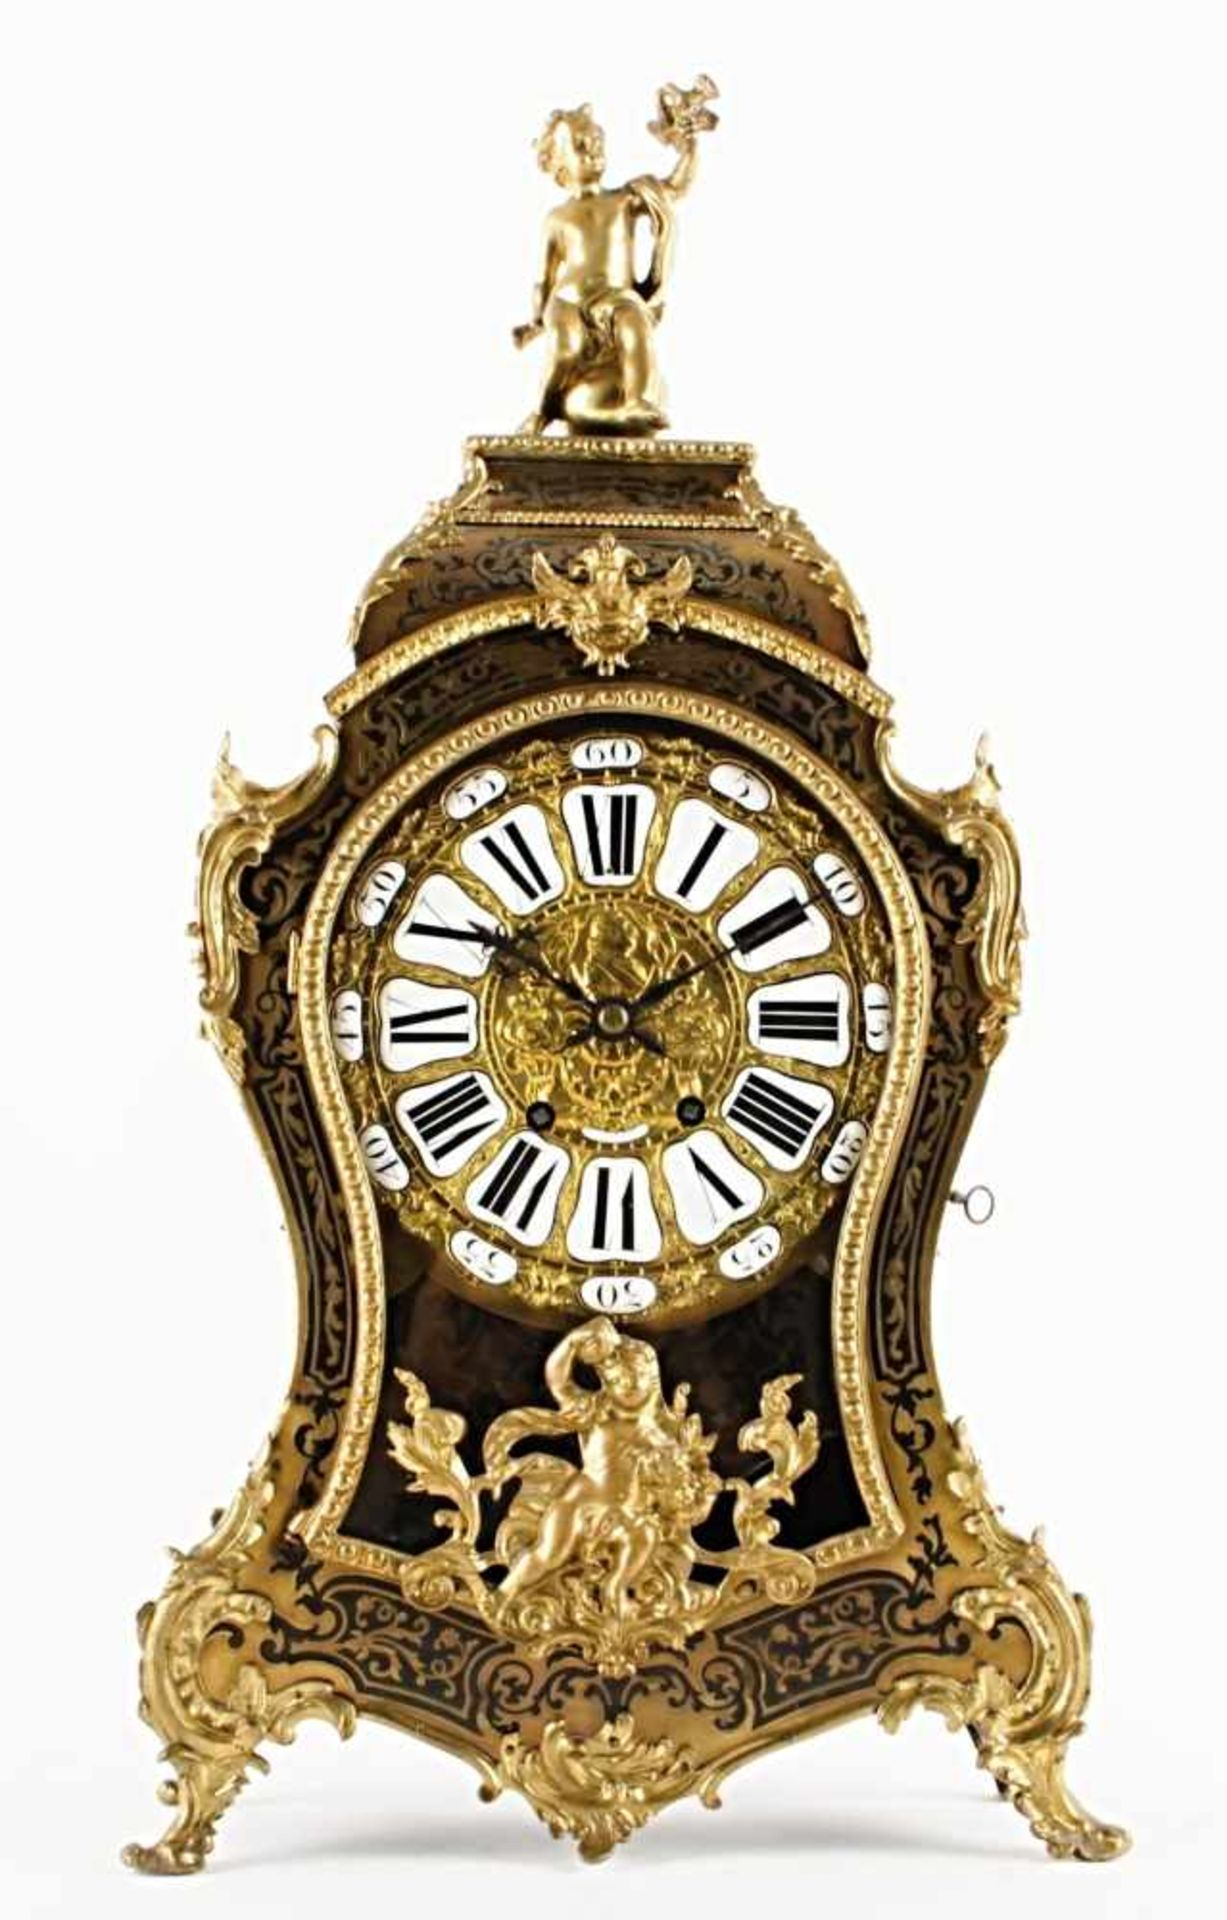 Los 28 - French table clock – Raingo Freres France, Paris, 2nd half of the 19th century, relief gold plated